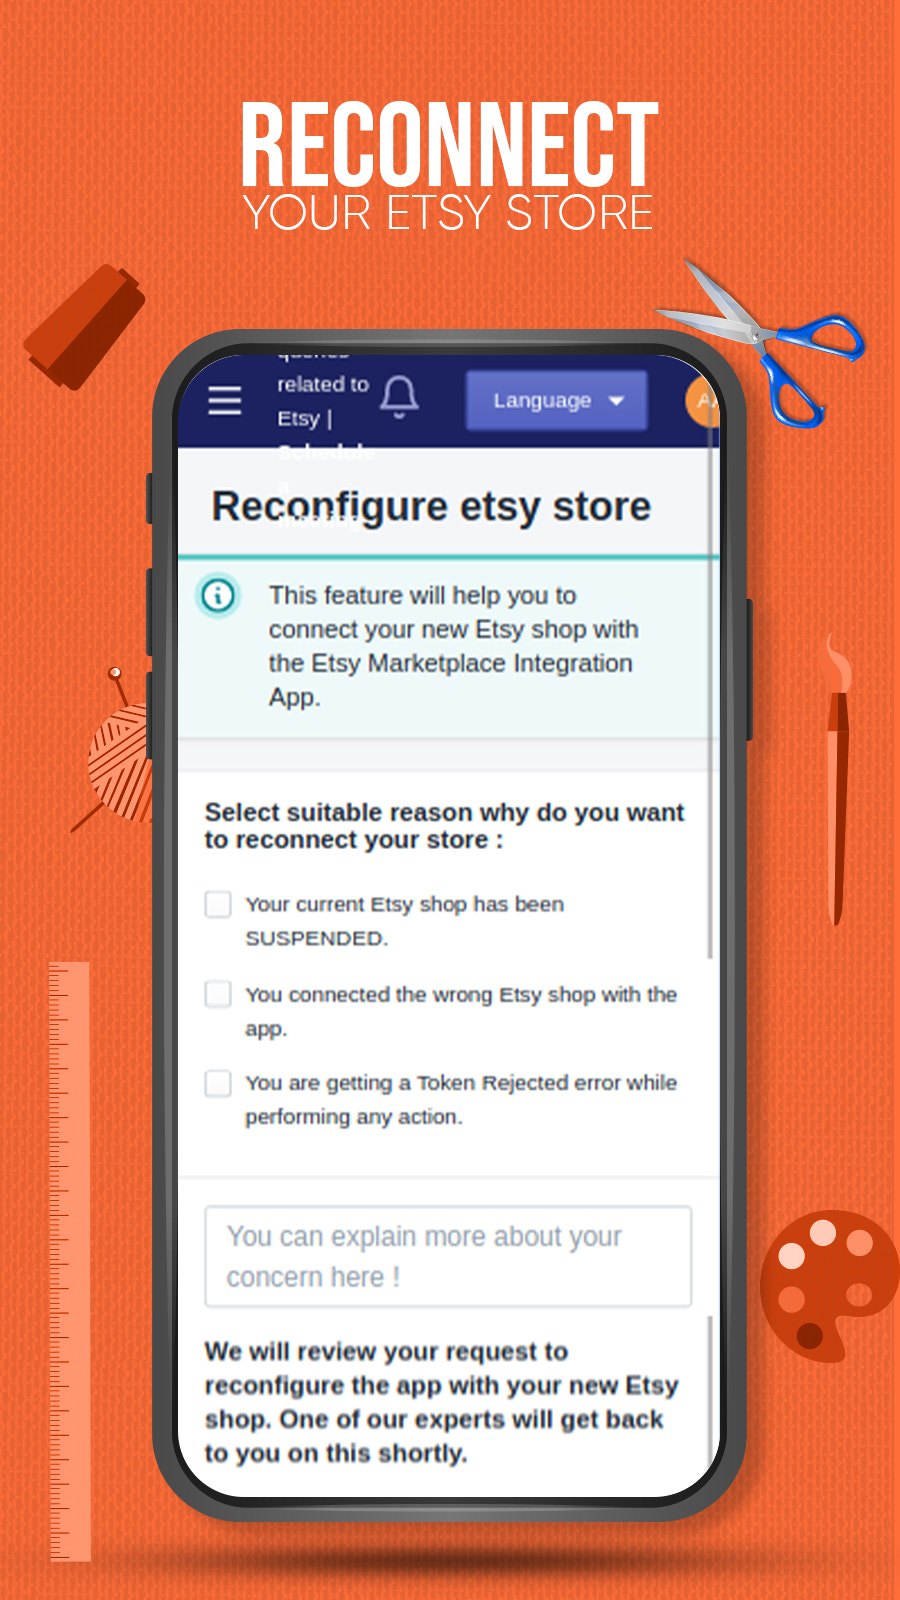 Reconnect your Etsy shop